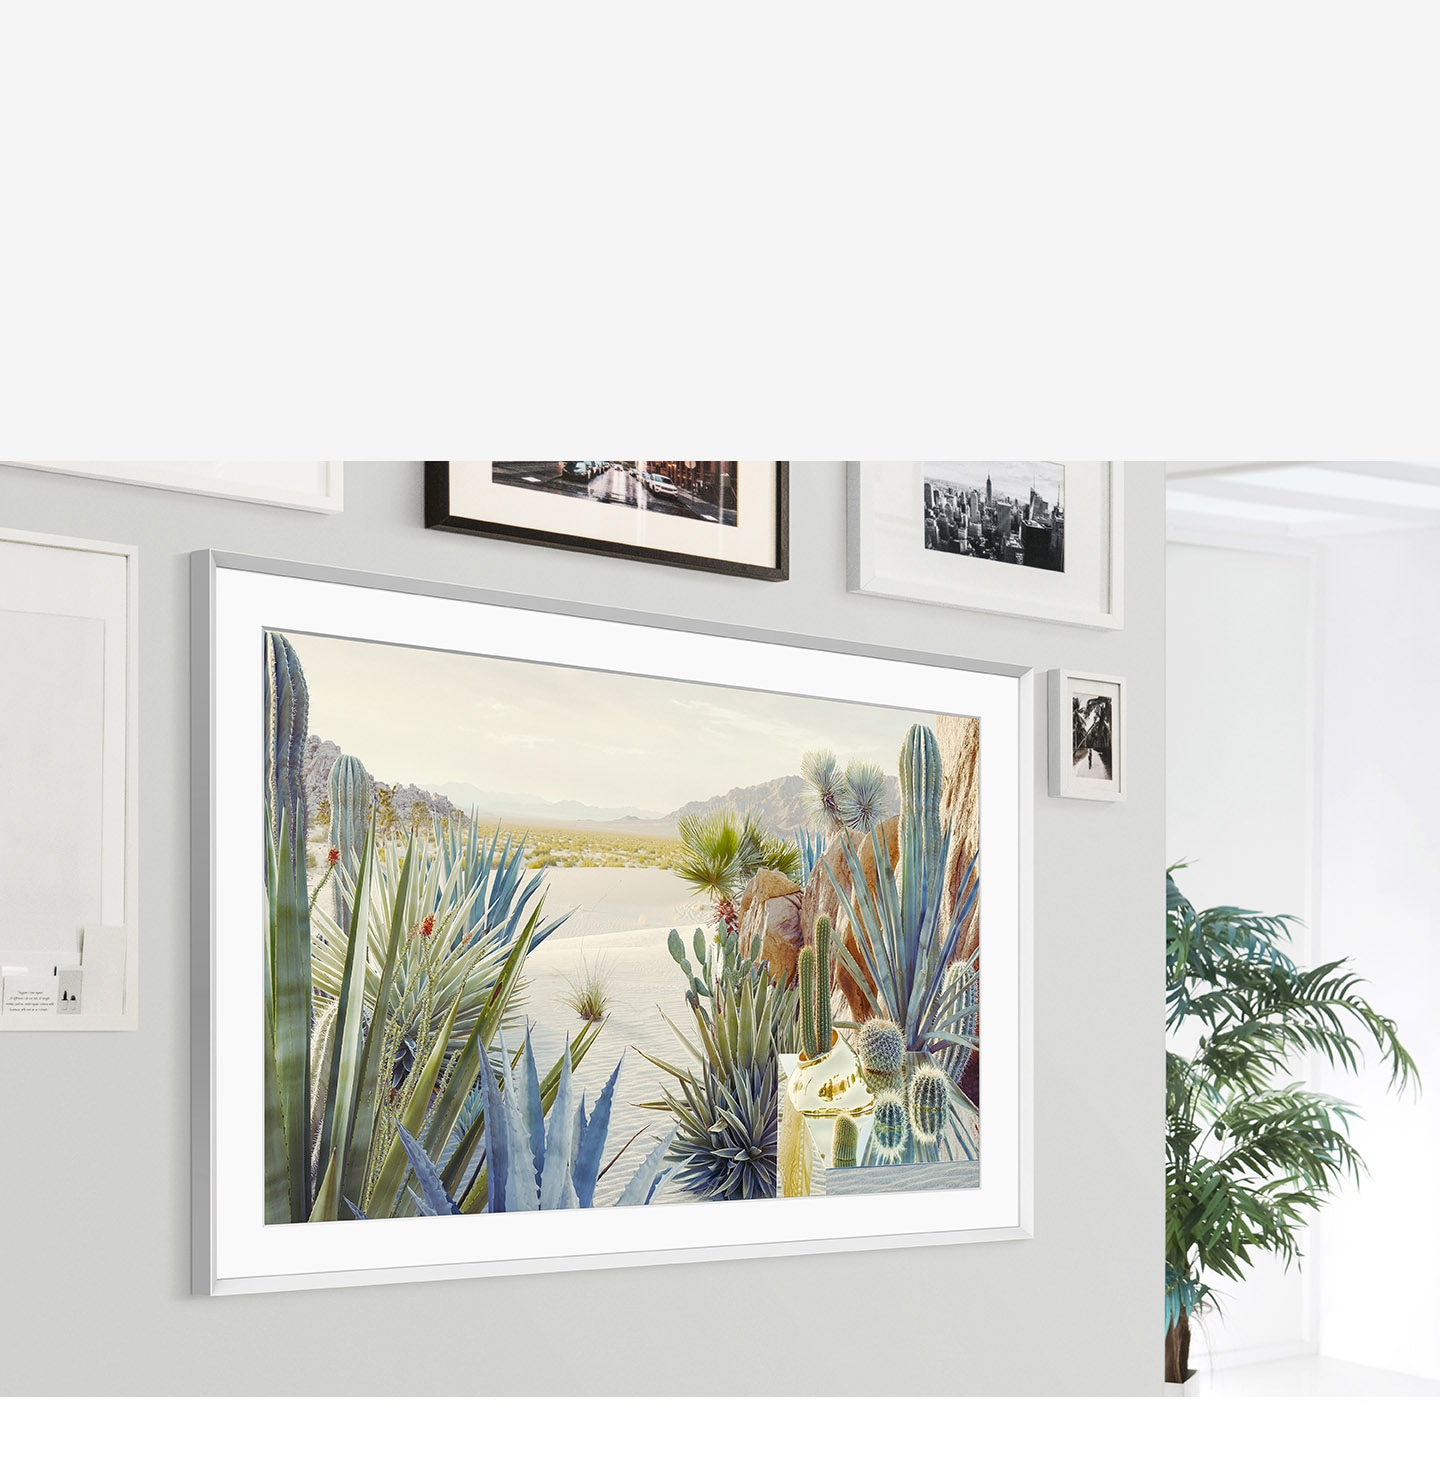 The Frame is mounted on the wall of a home interior and its modern frame design blends with the other picture frameson the wall.